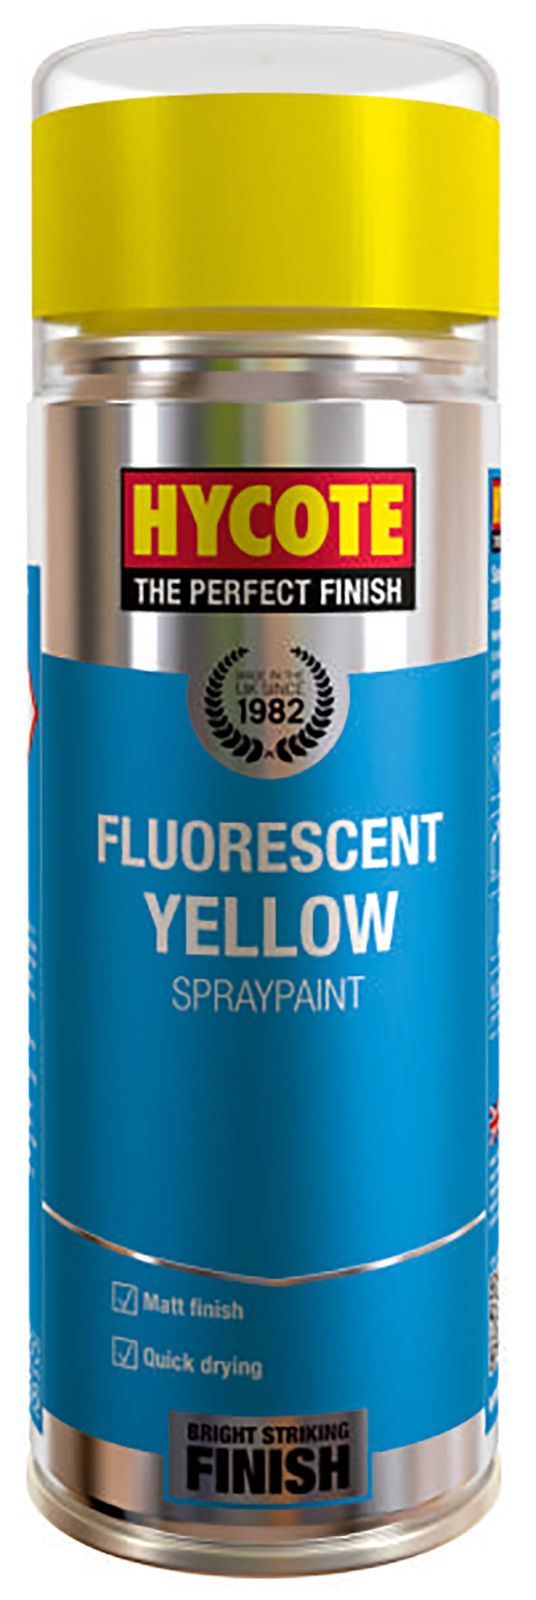 Hycote Fluorescent Yellow Paint - 400ml